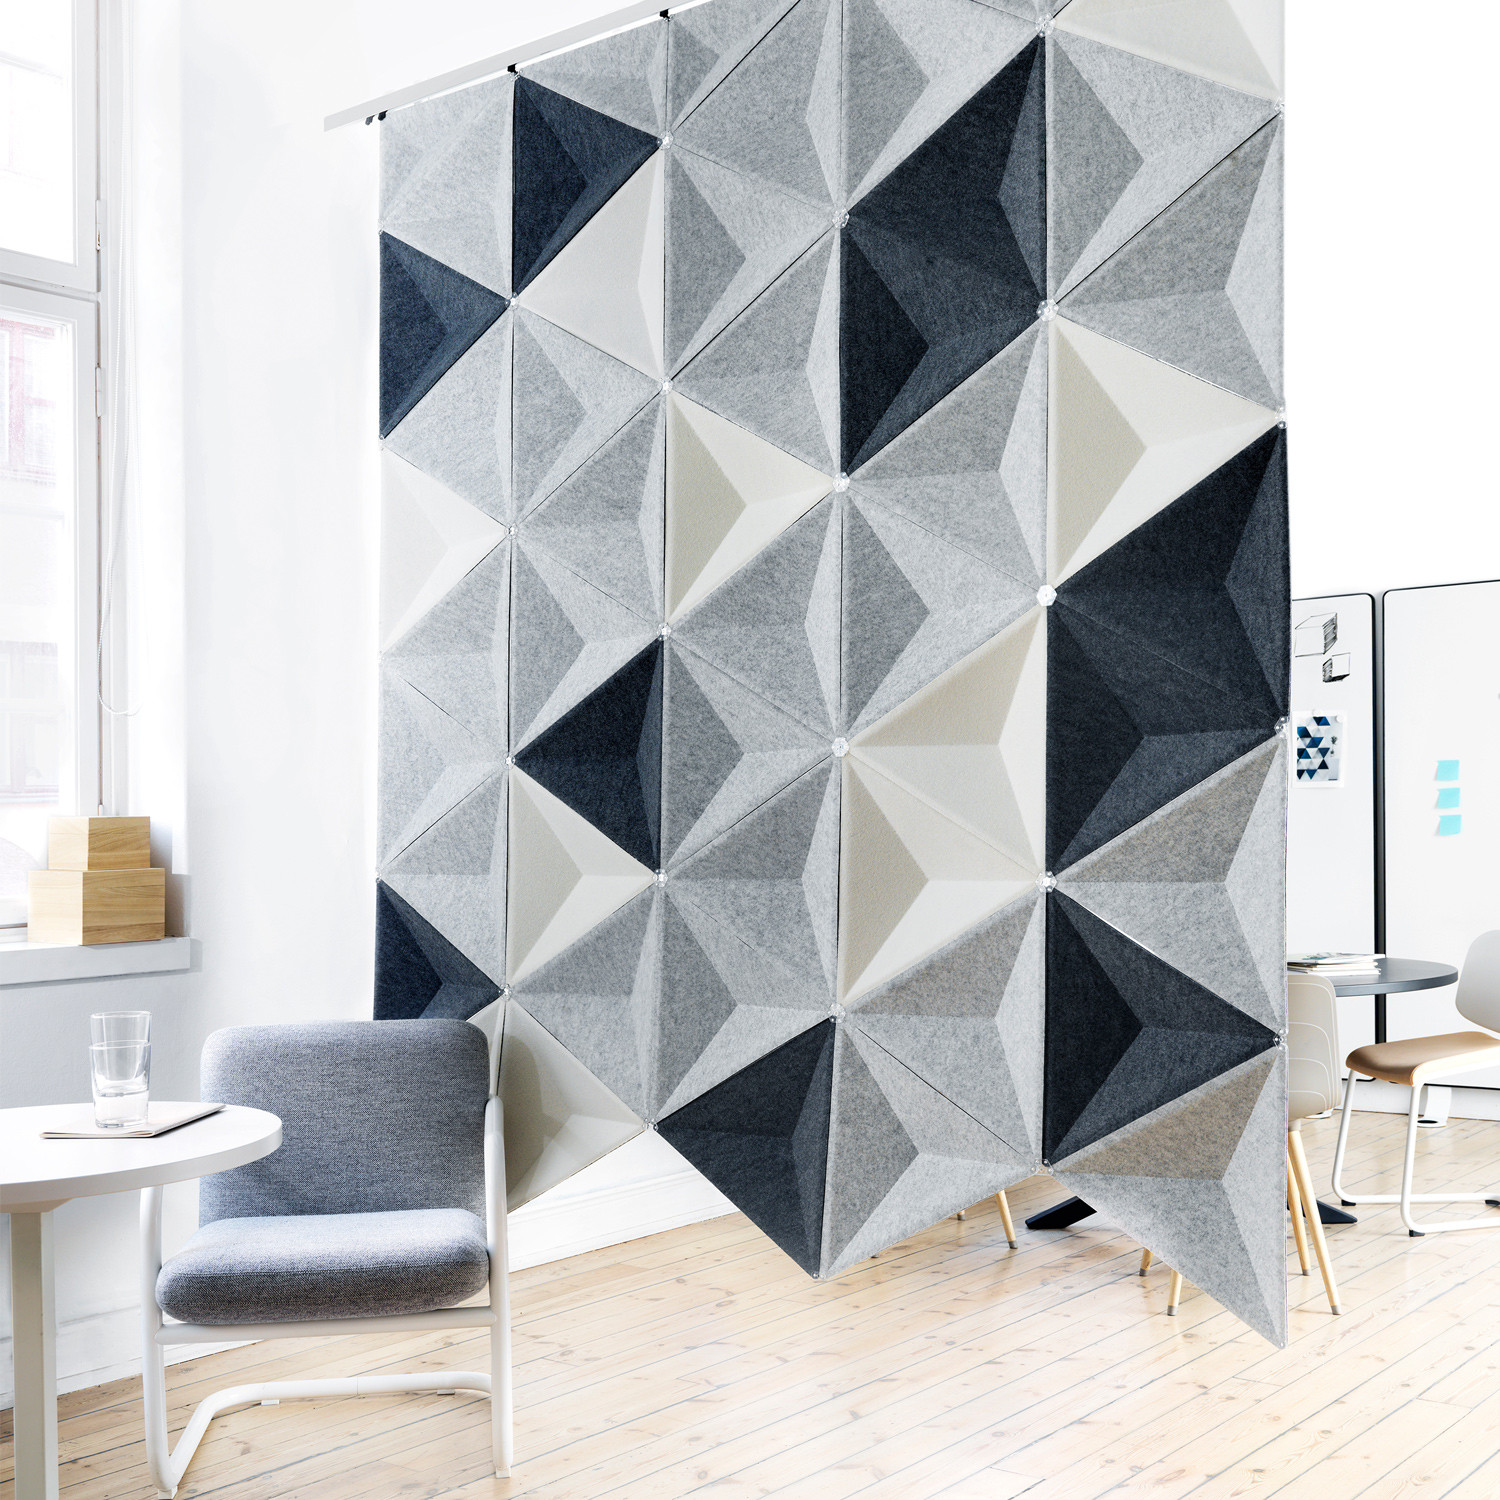 Aircone Suspended Acoustic Room Screen